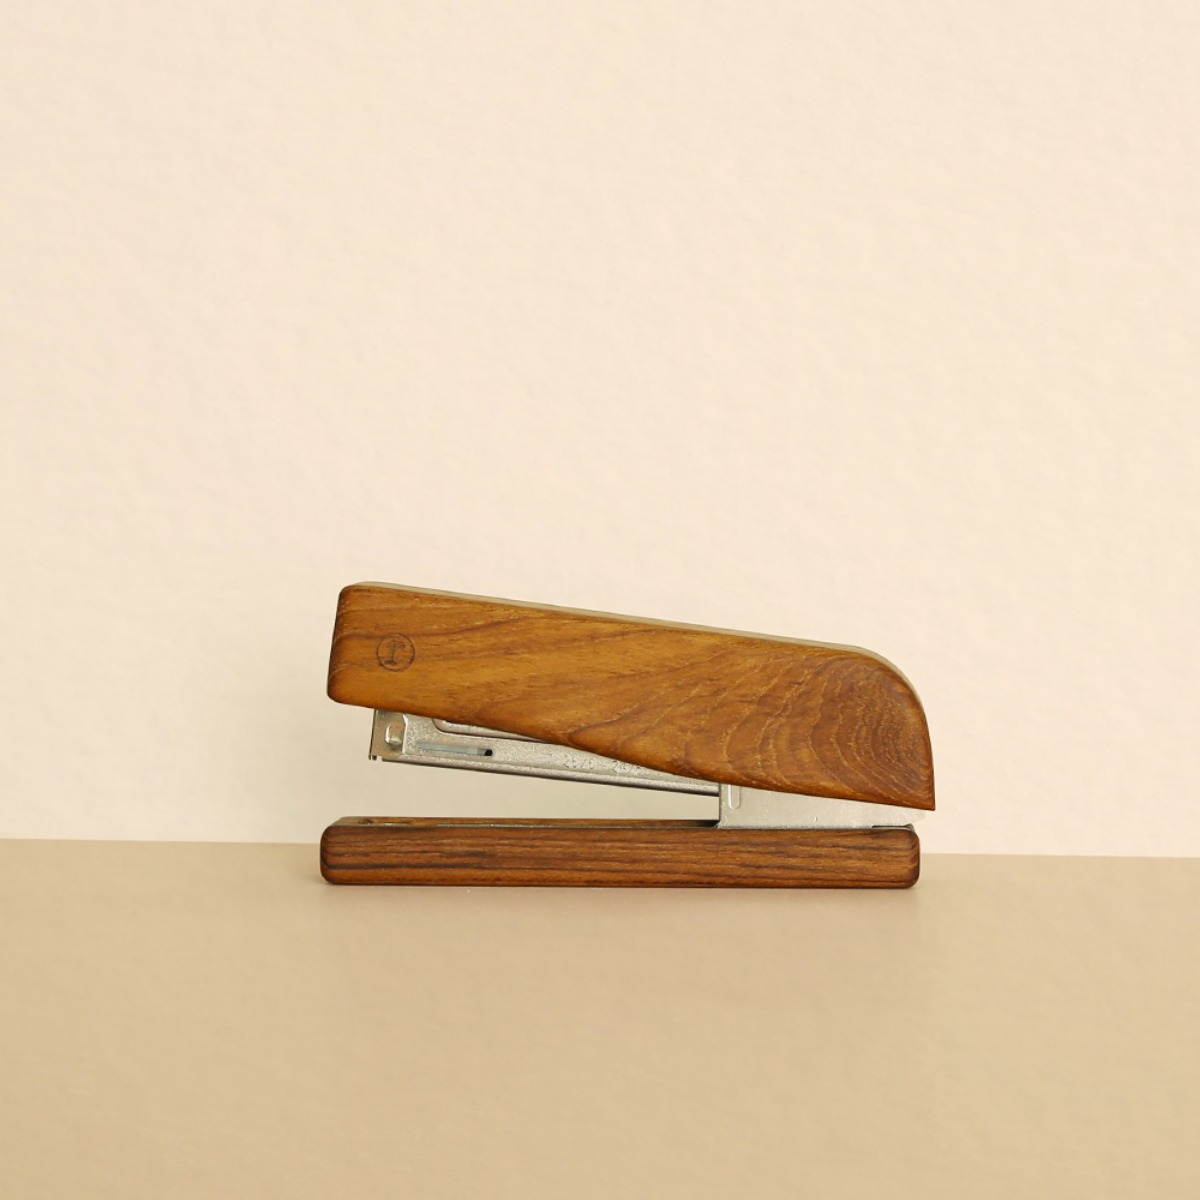 Stapler (ANC-OFFICE-002)